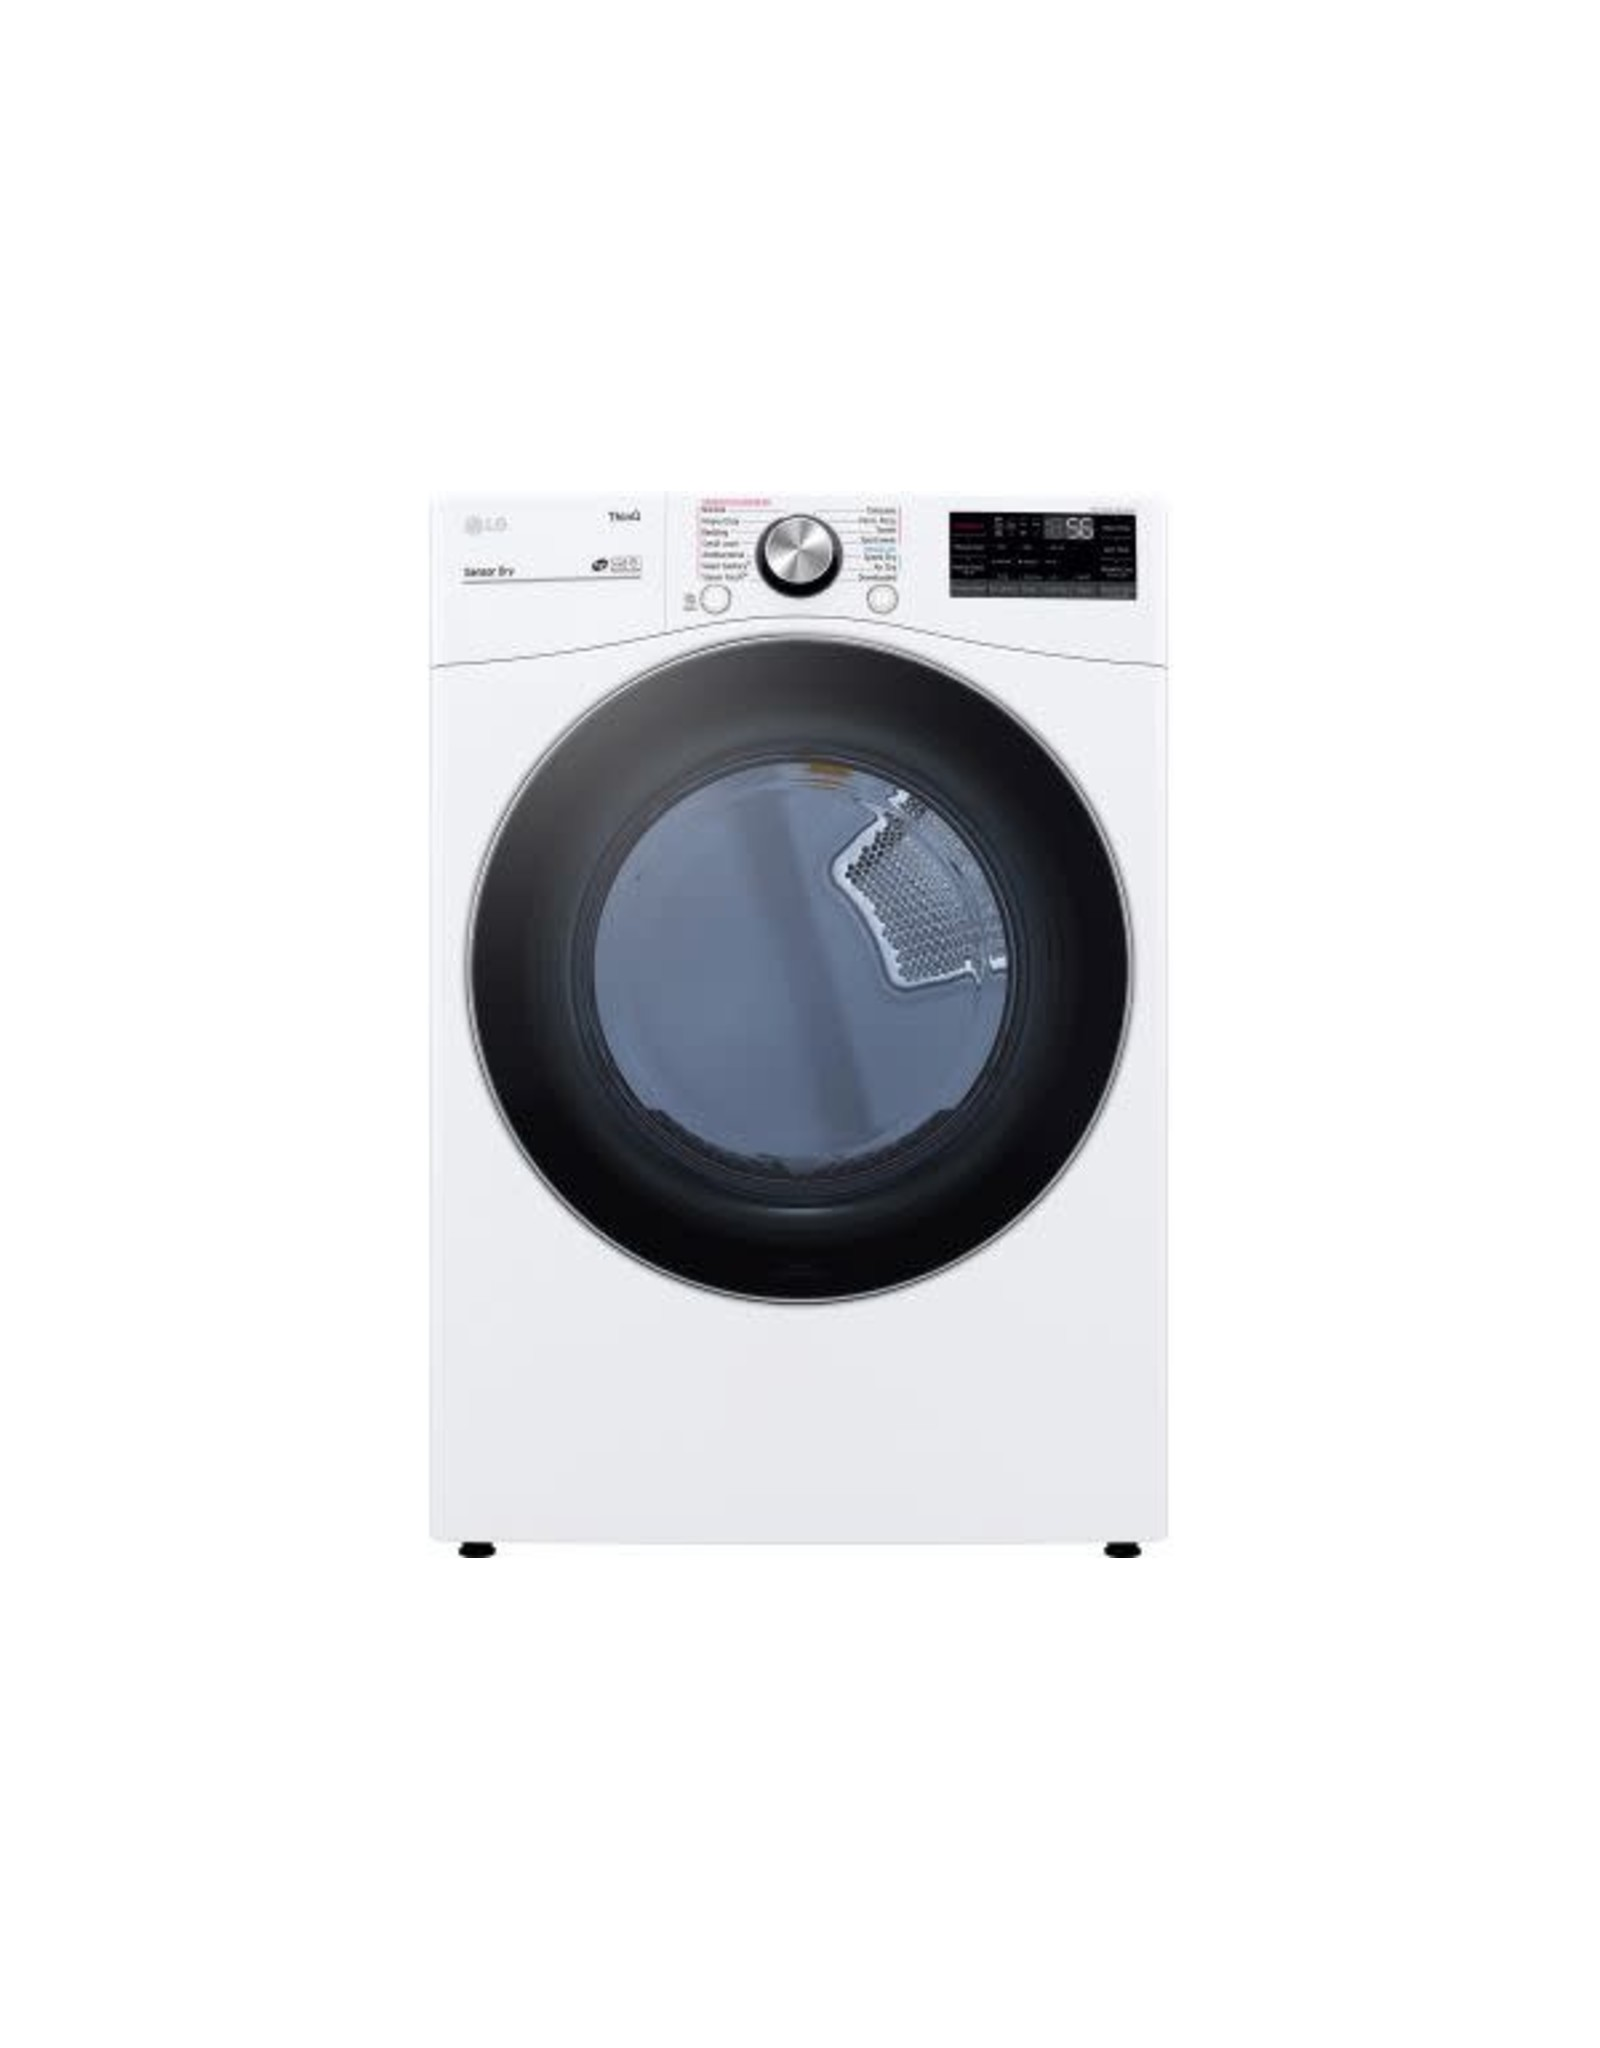 SAMSUNG DLEX4200W  7.4 cu. ft. Ultra Large Capacity White Smart Electric Vented Dryer with Sensor Dry, TurboSteam & Wi-Fi Enabled